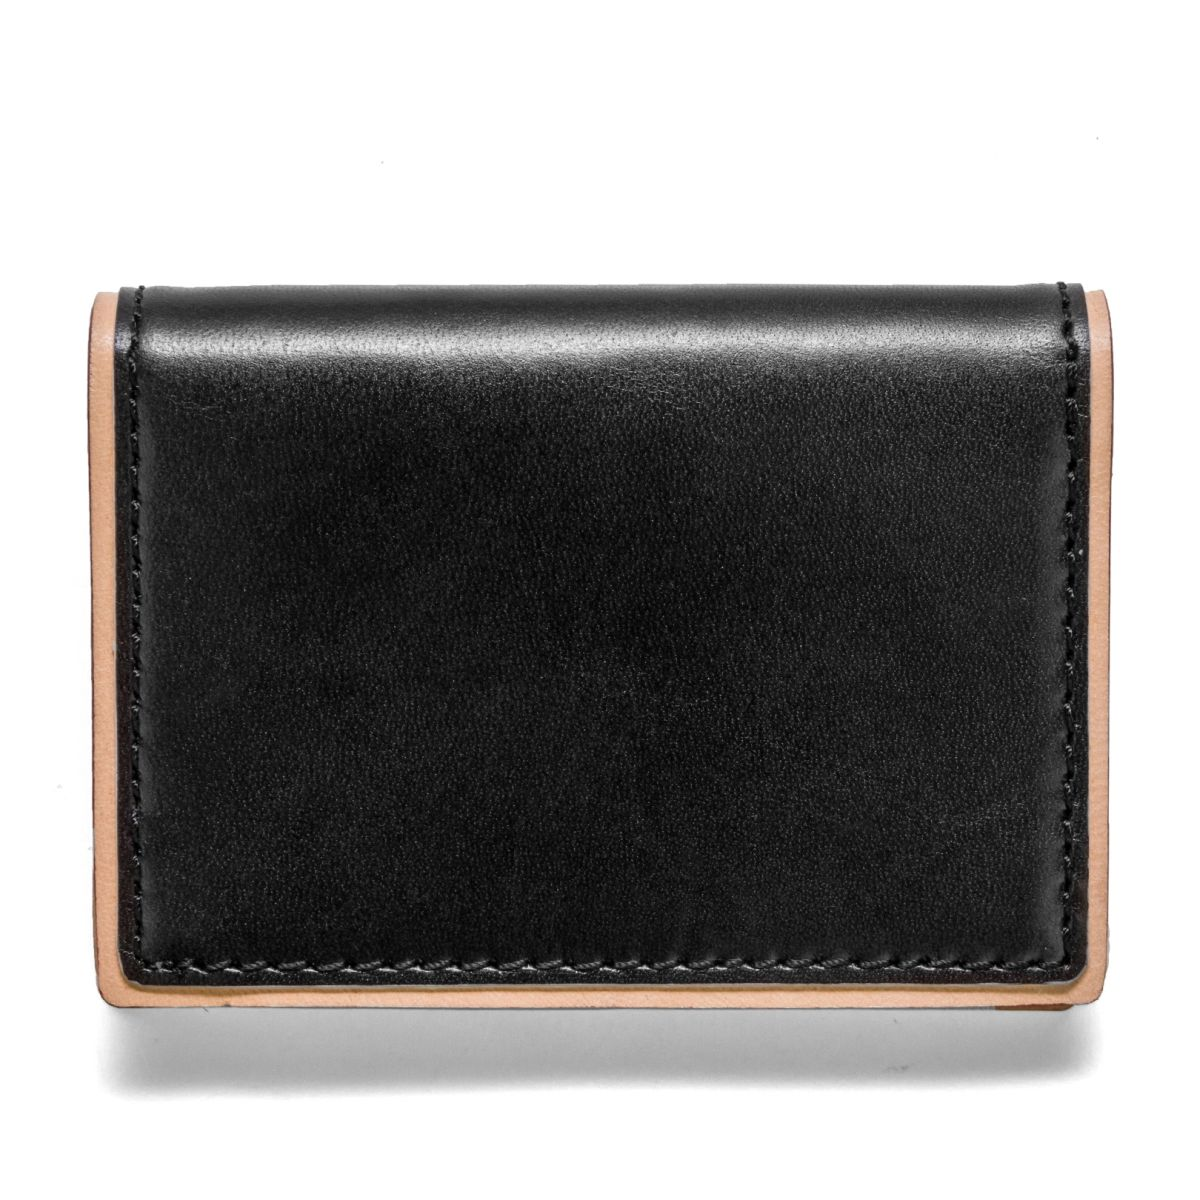 DUOTONE Folding Carrier Leather Wallet - Black